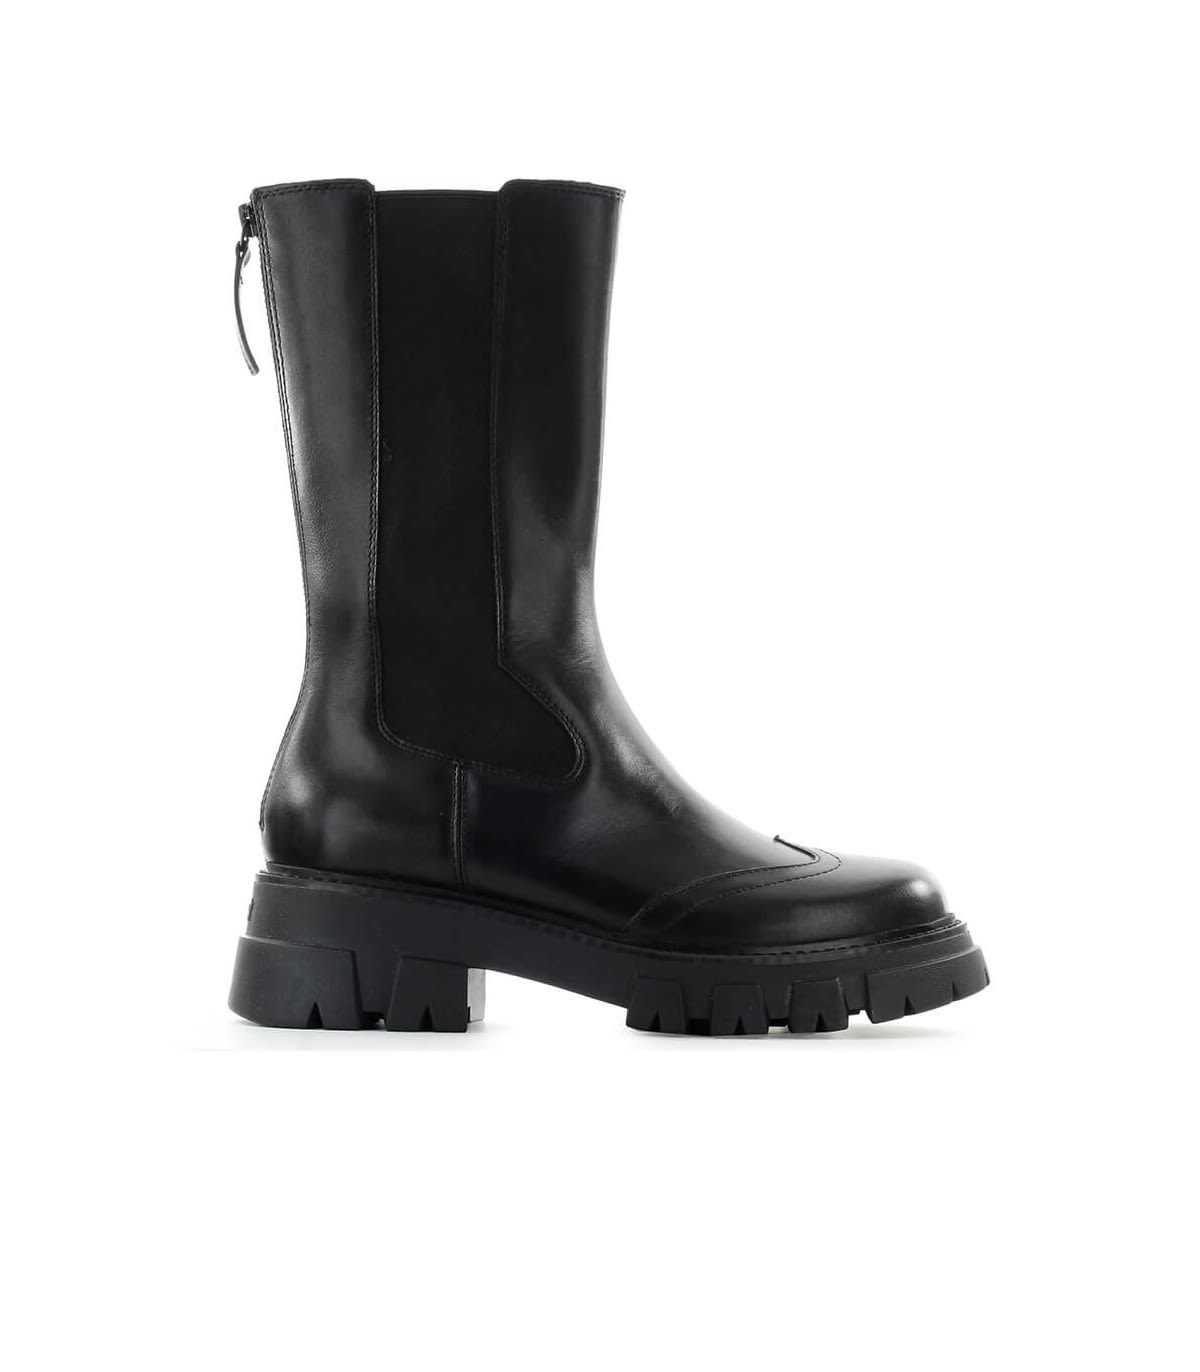 Ash Ankle highs LINCOLN BLACK HIGH CHELSEA BOOT